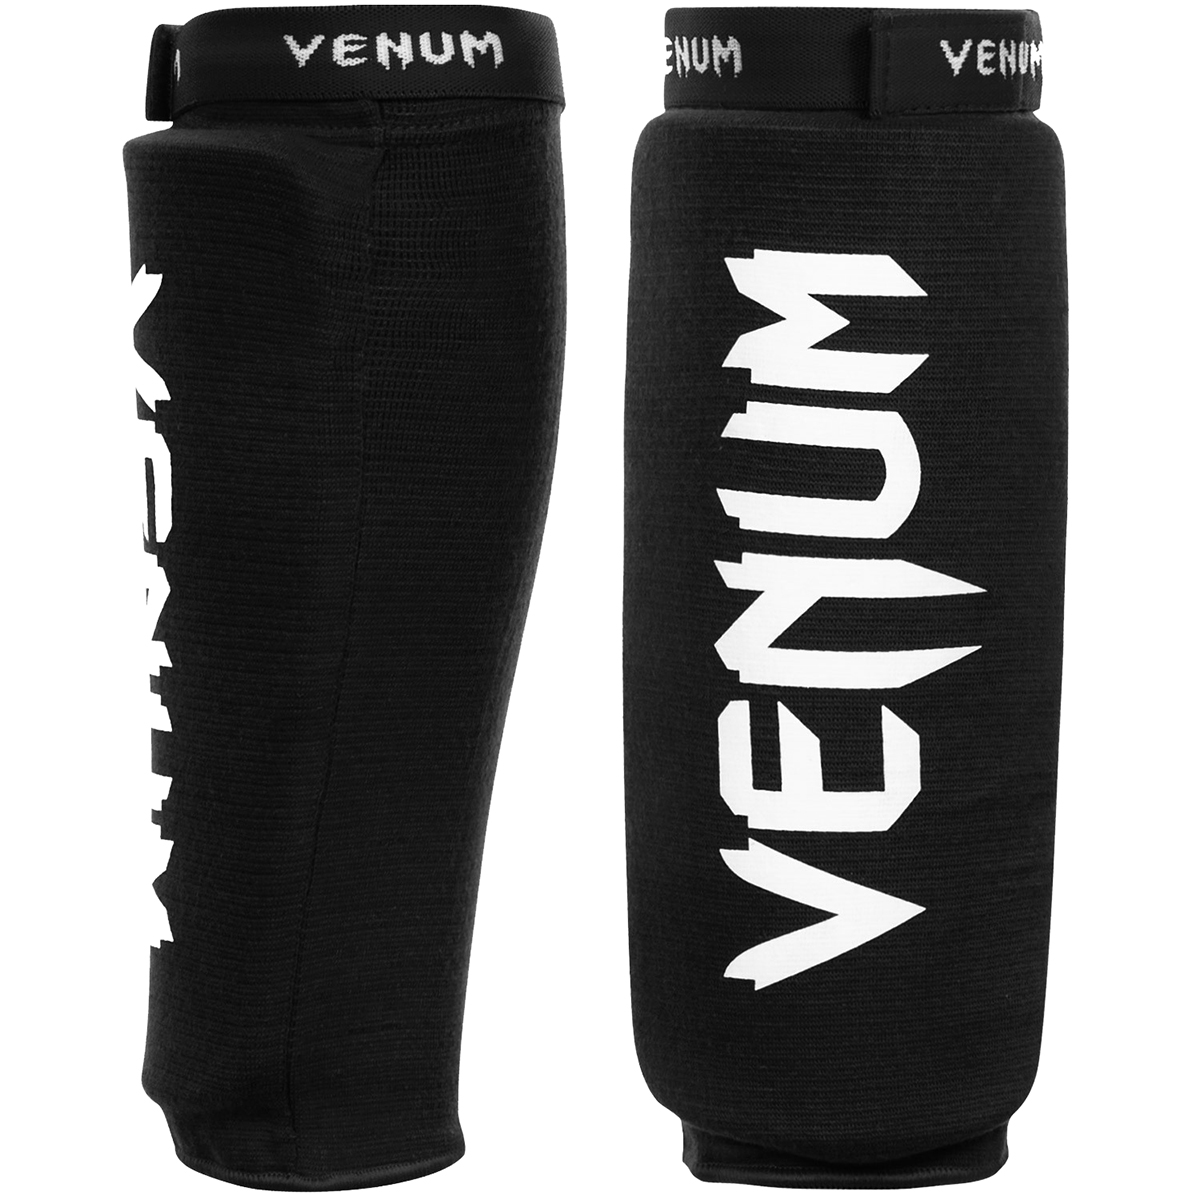 Venum Kontact Protective Slip-On MMA Shin Guards - Black